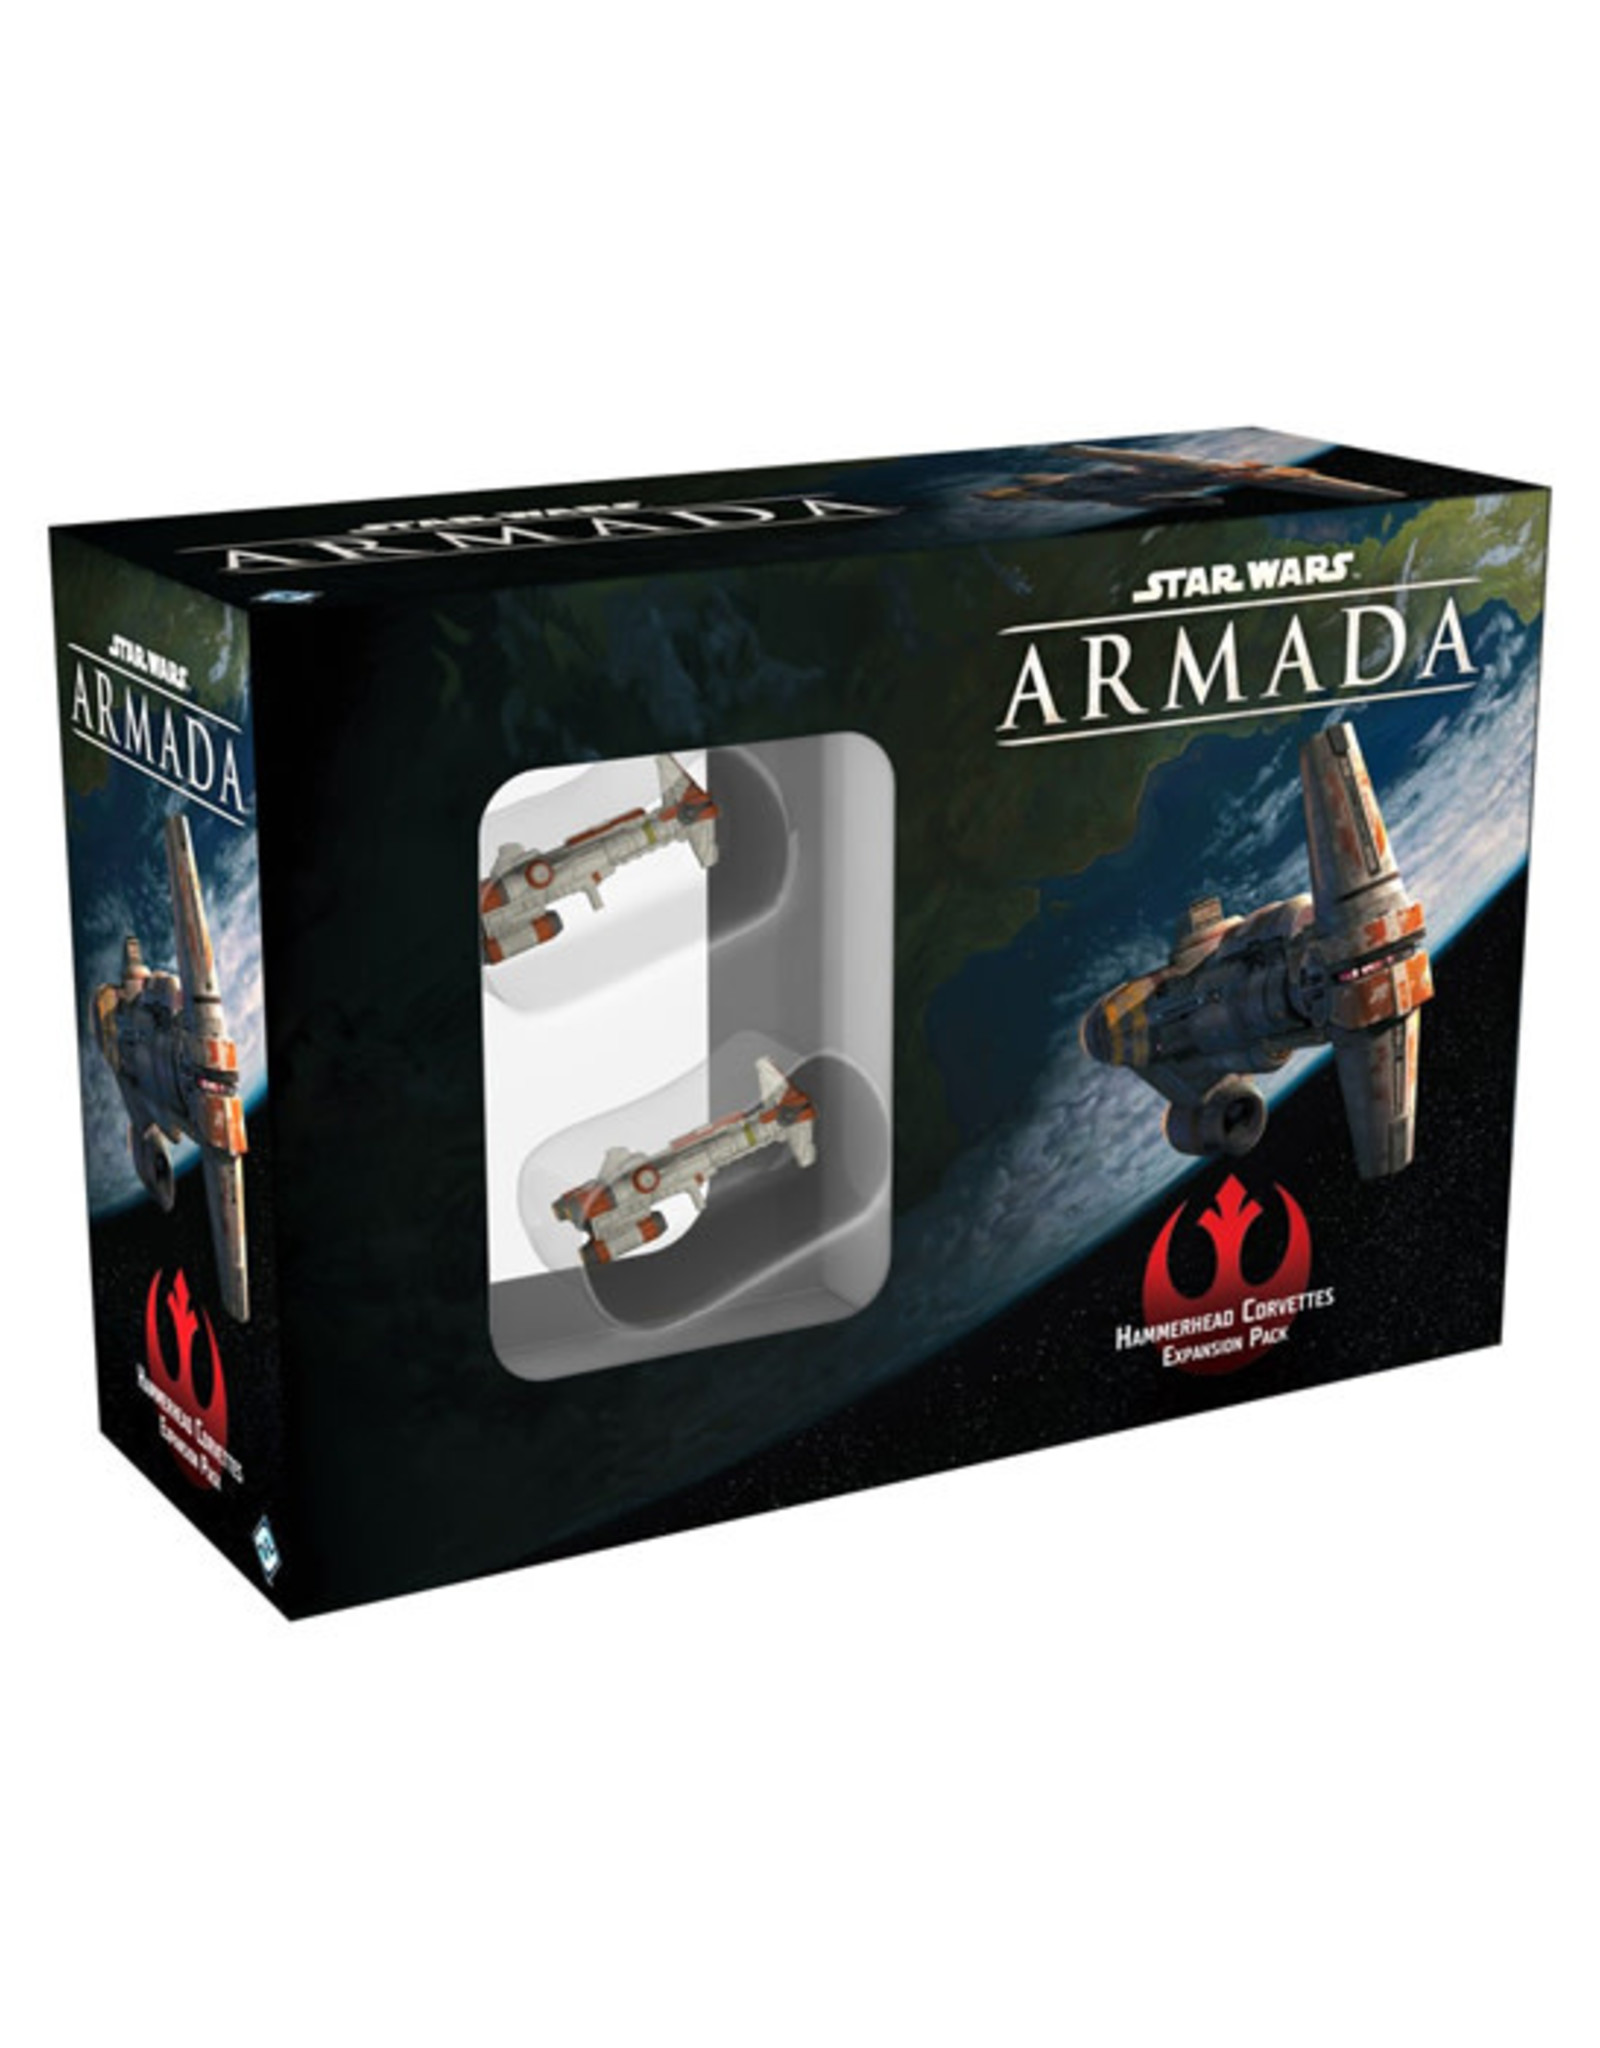 Fantasy Flight Games Star Wars: Armada - Hammerhead Corvettes